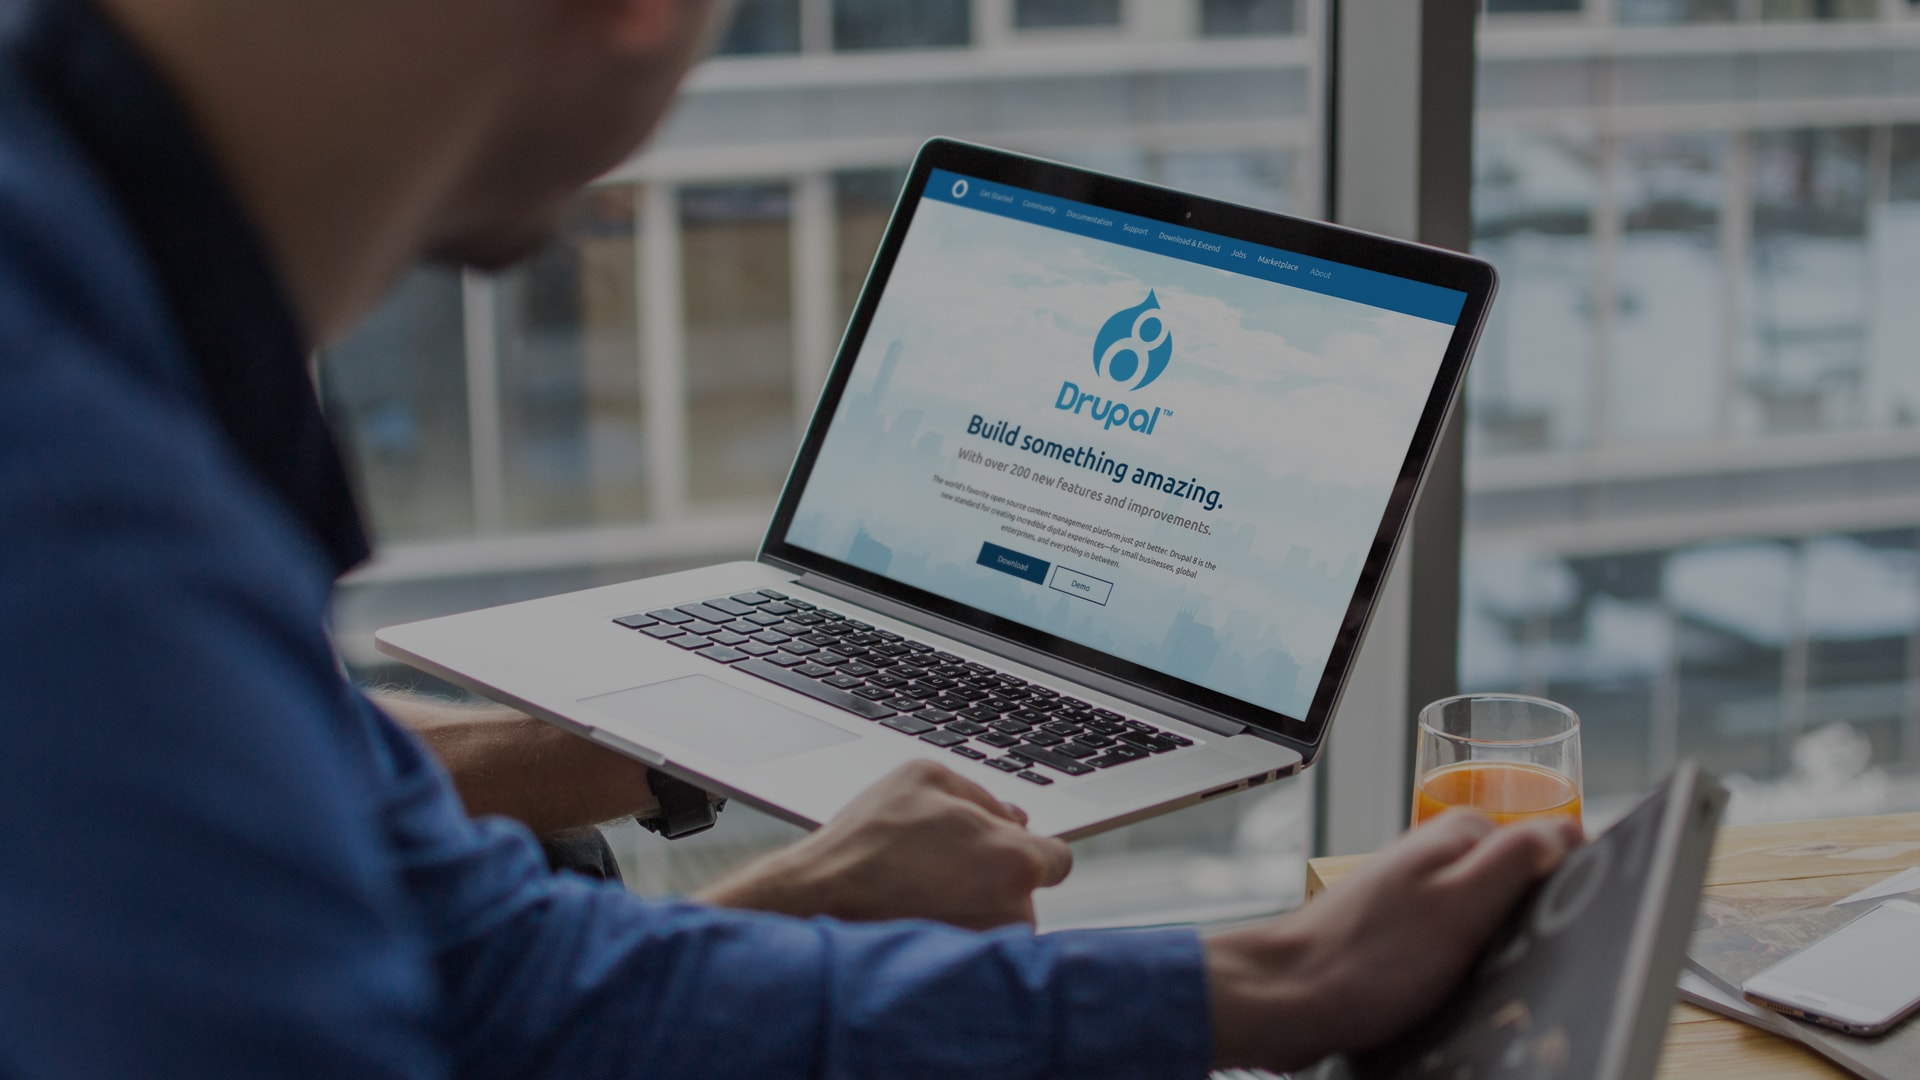 Drupal 8: Why It's The Top Choice For Your Website